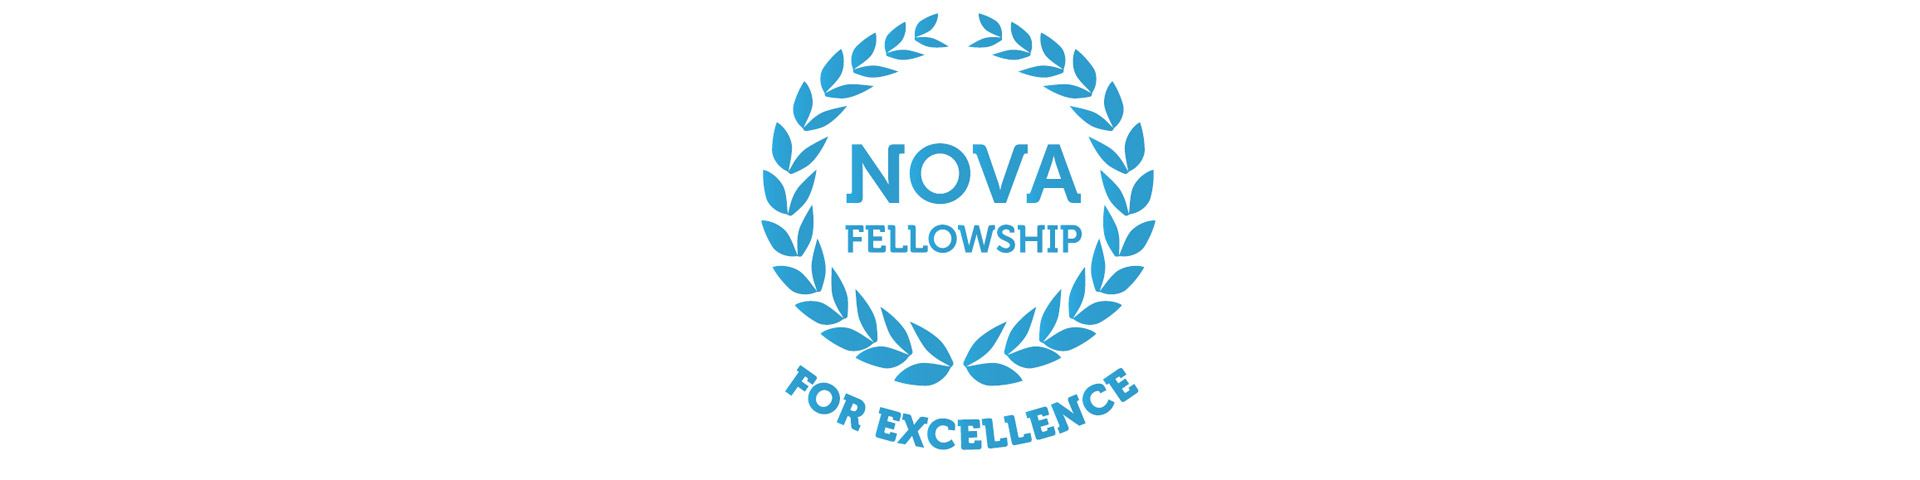 Nova SBE Fellowship for Excellence by Nova SBE